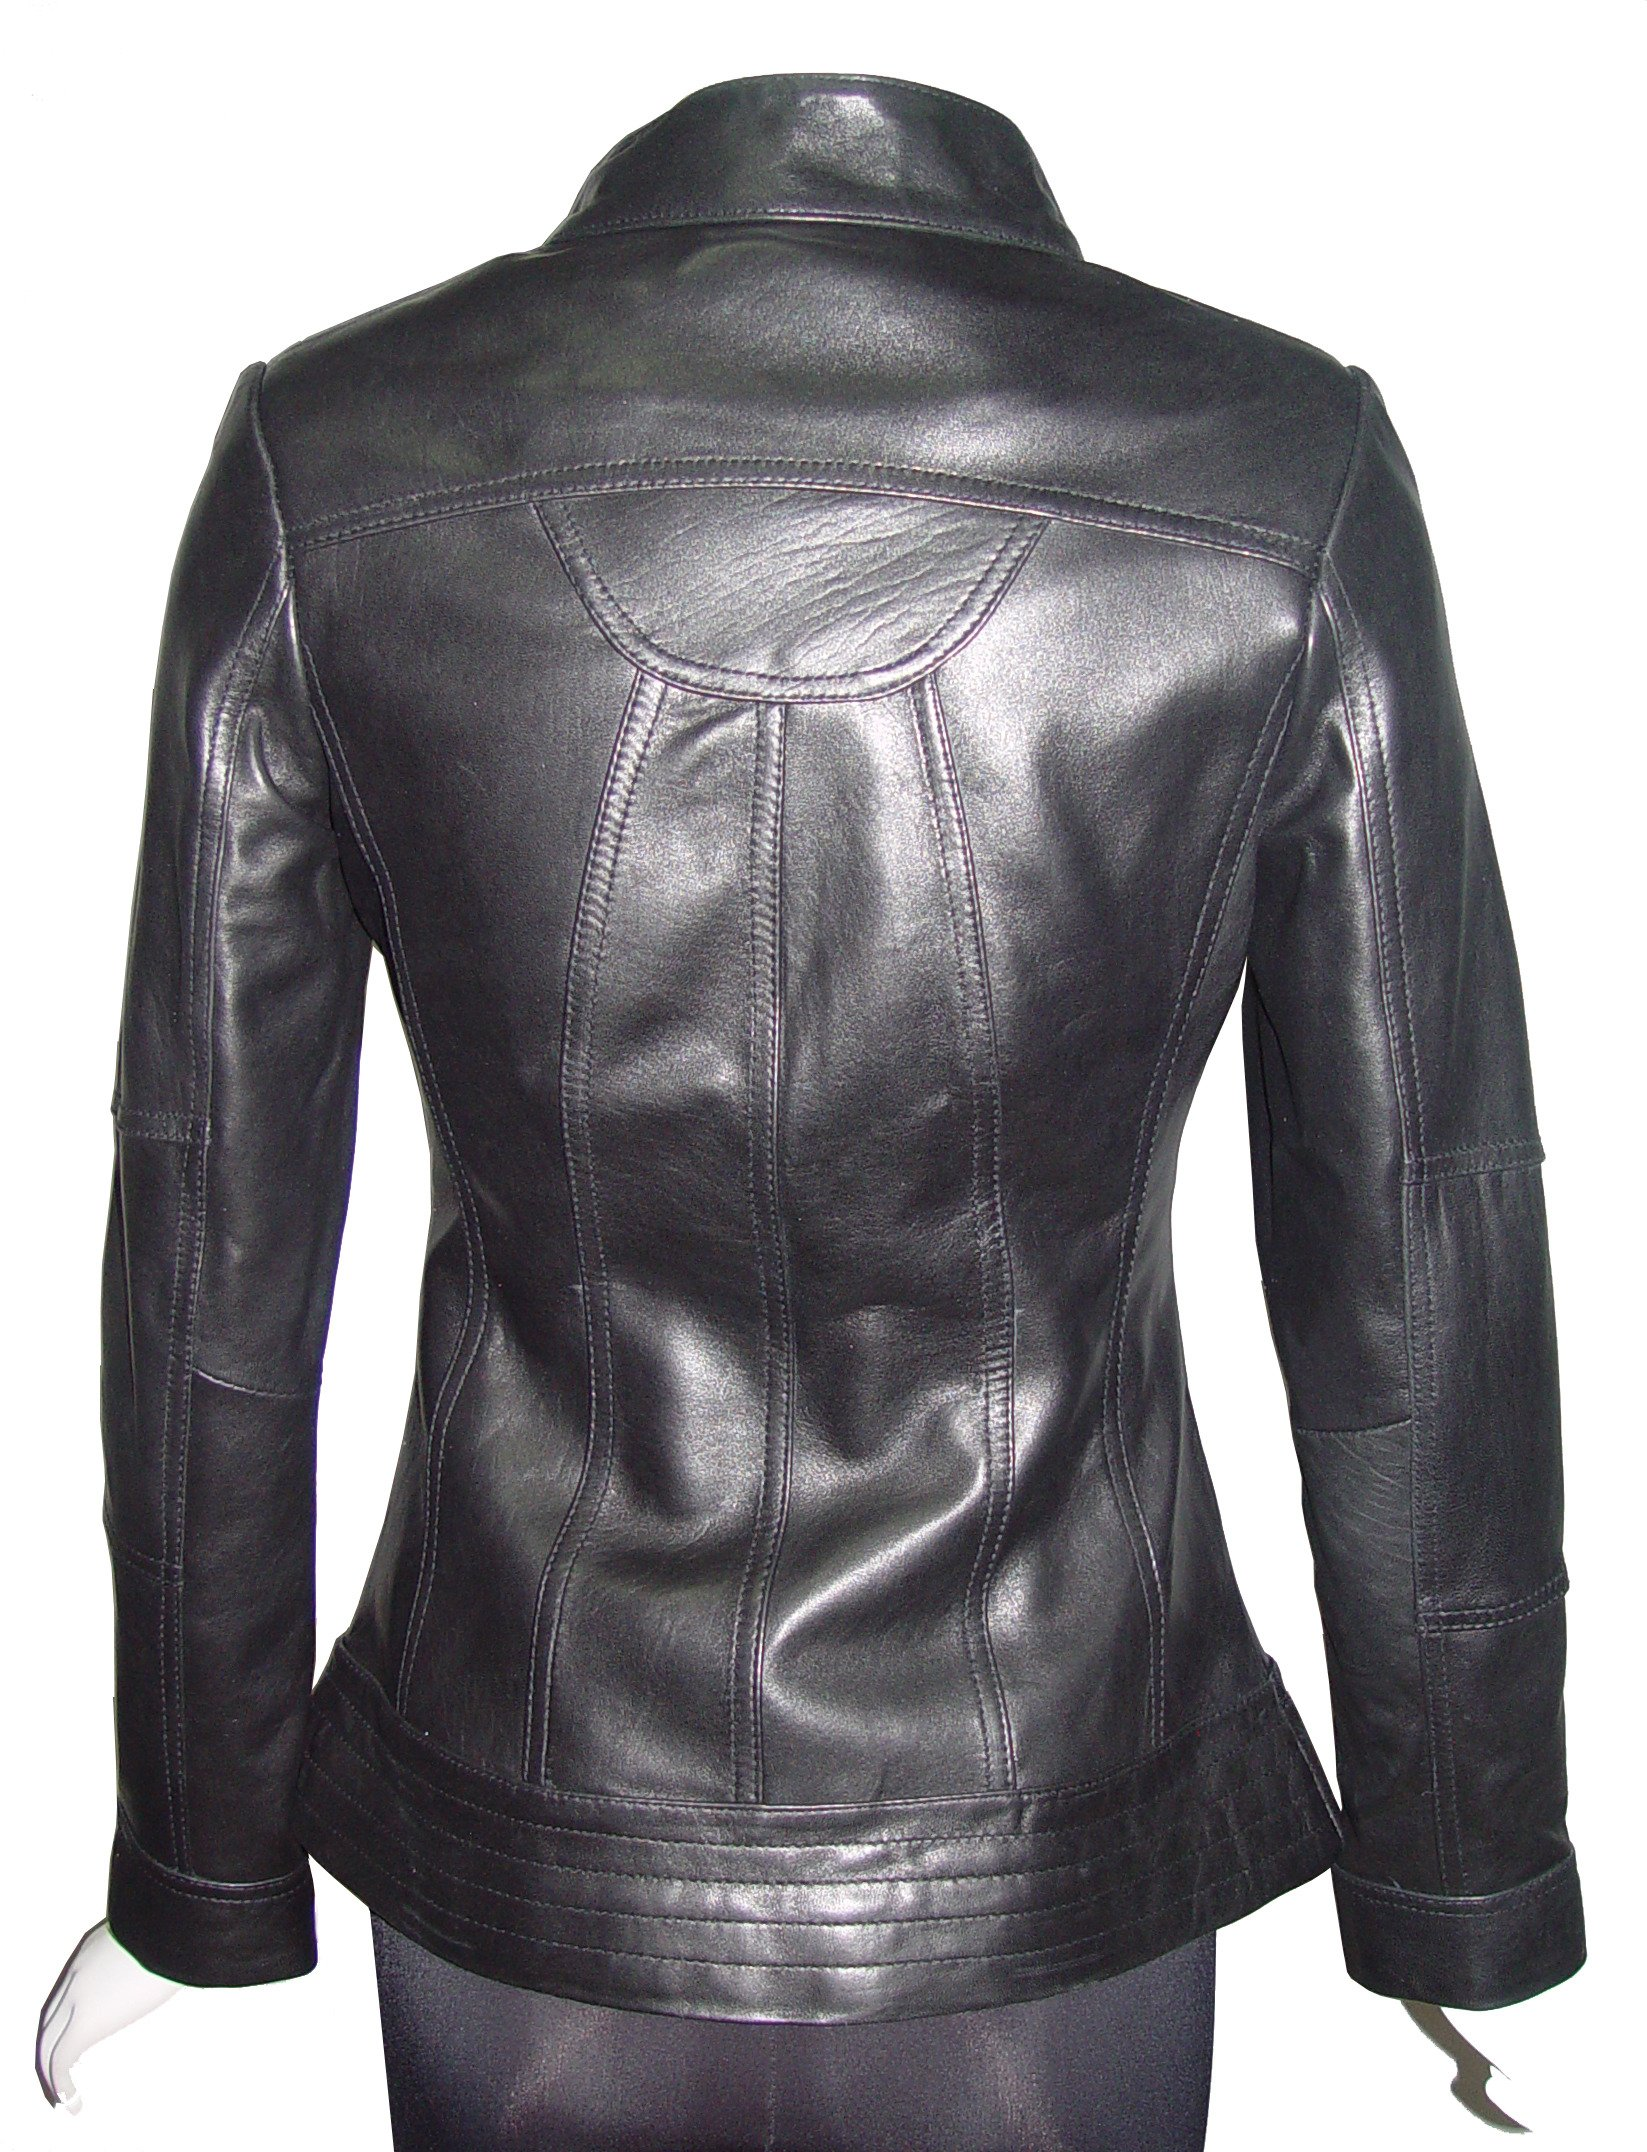 Nettailor 4173 Real Leather Womens Jackets Best Cool Stylish Expensive Lining by Paccilo (Image #3)